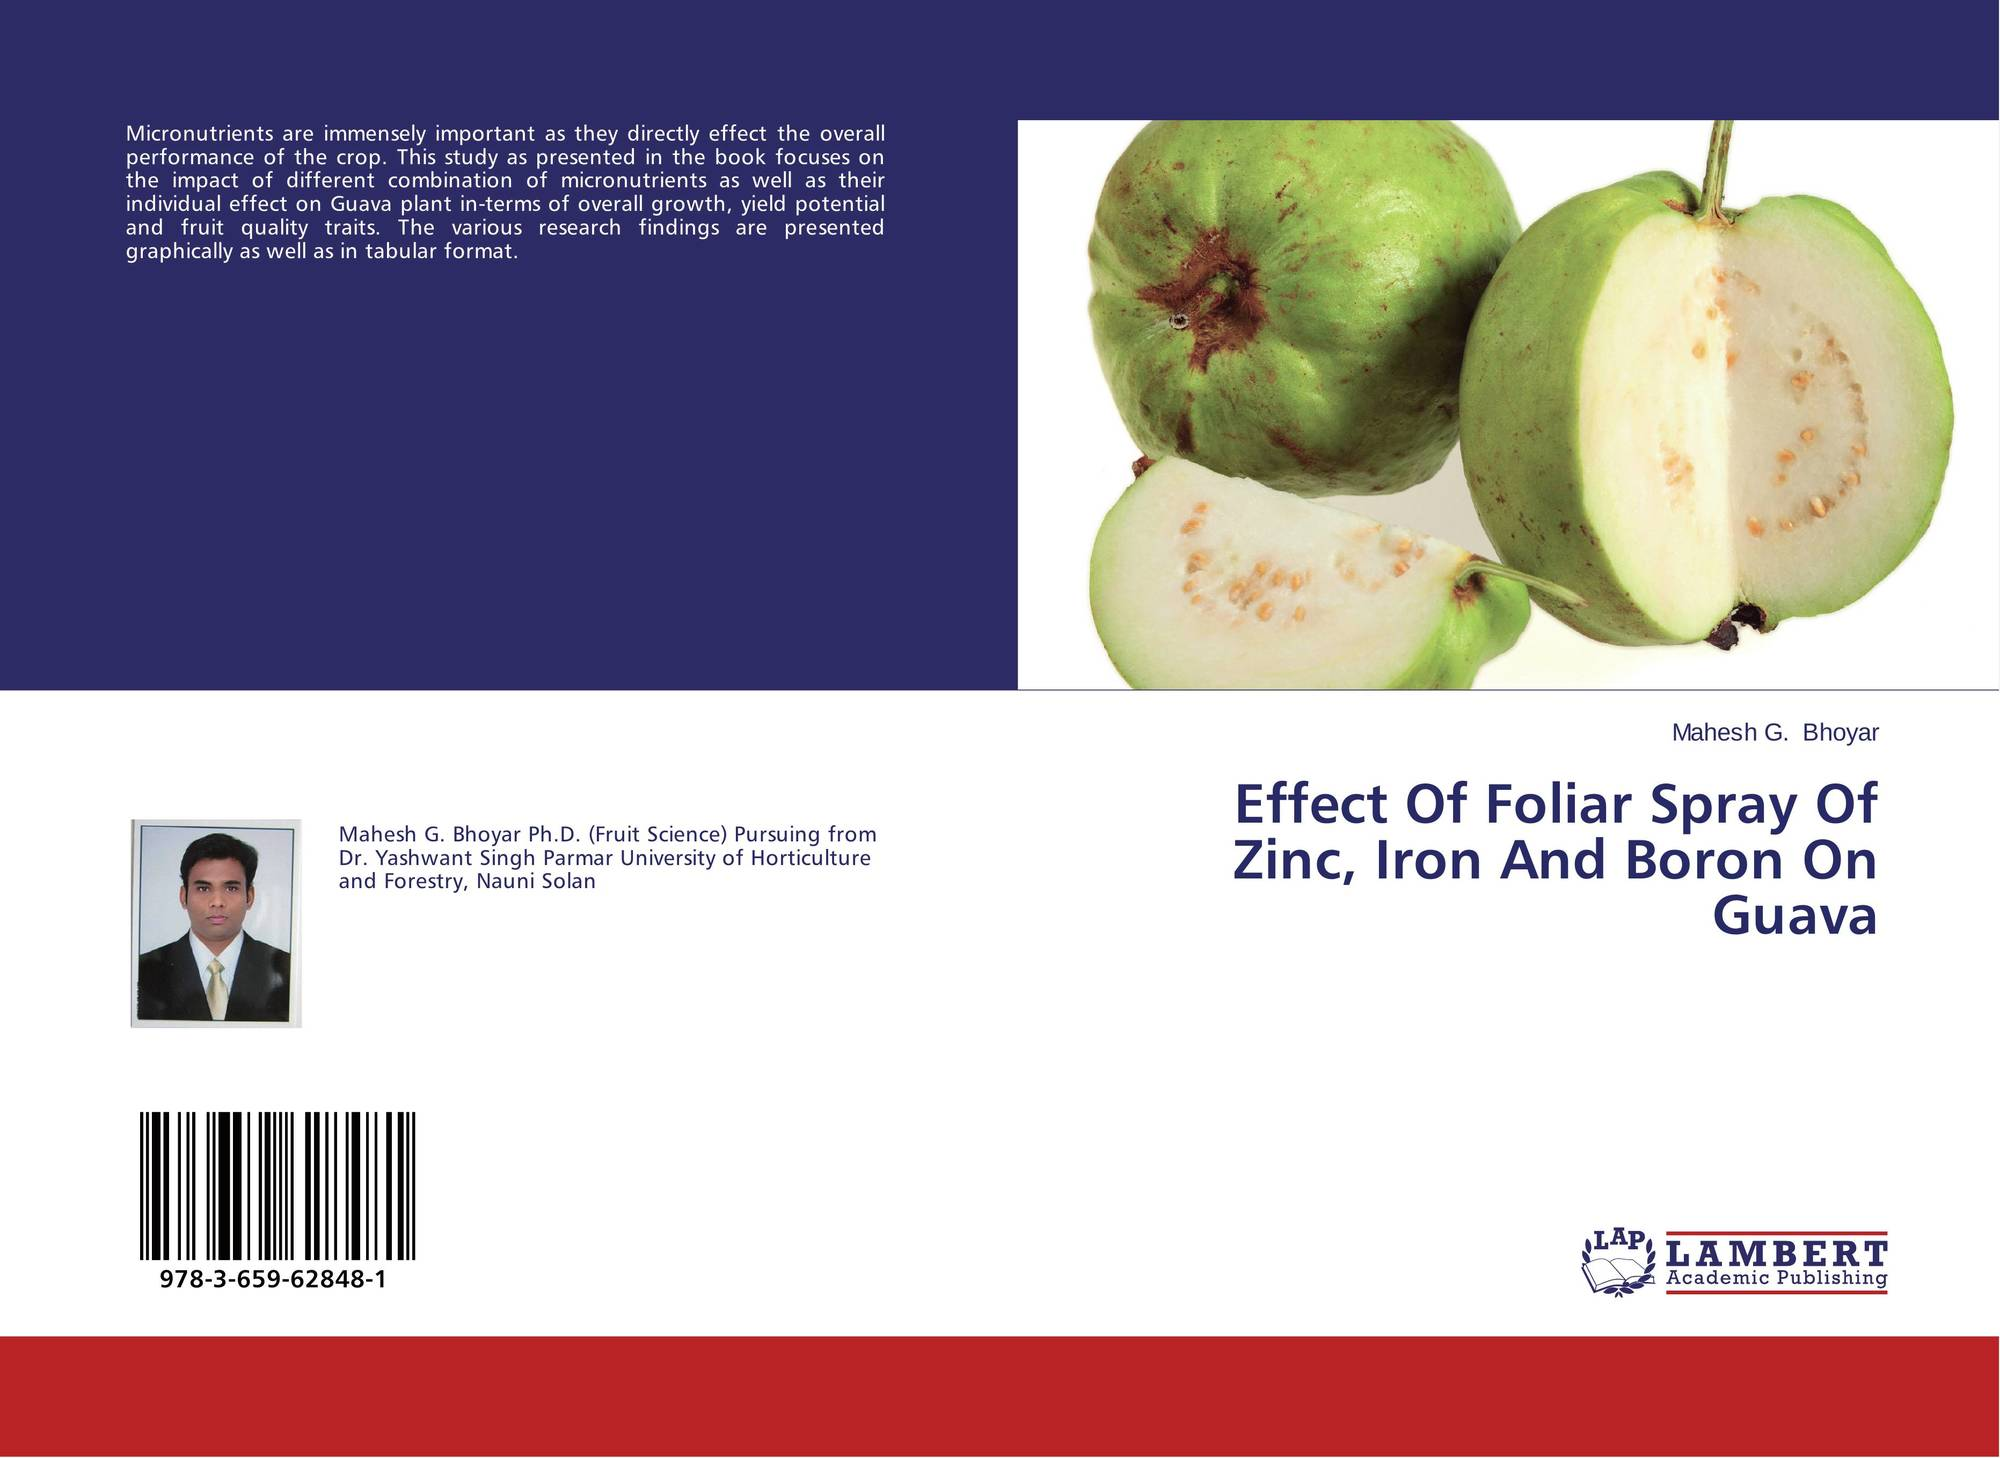 Effect Of Foliar Spray Of Zinc, Iron And Boron On Guava, 978